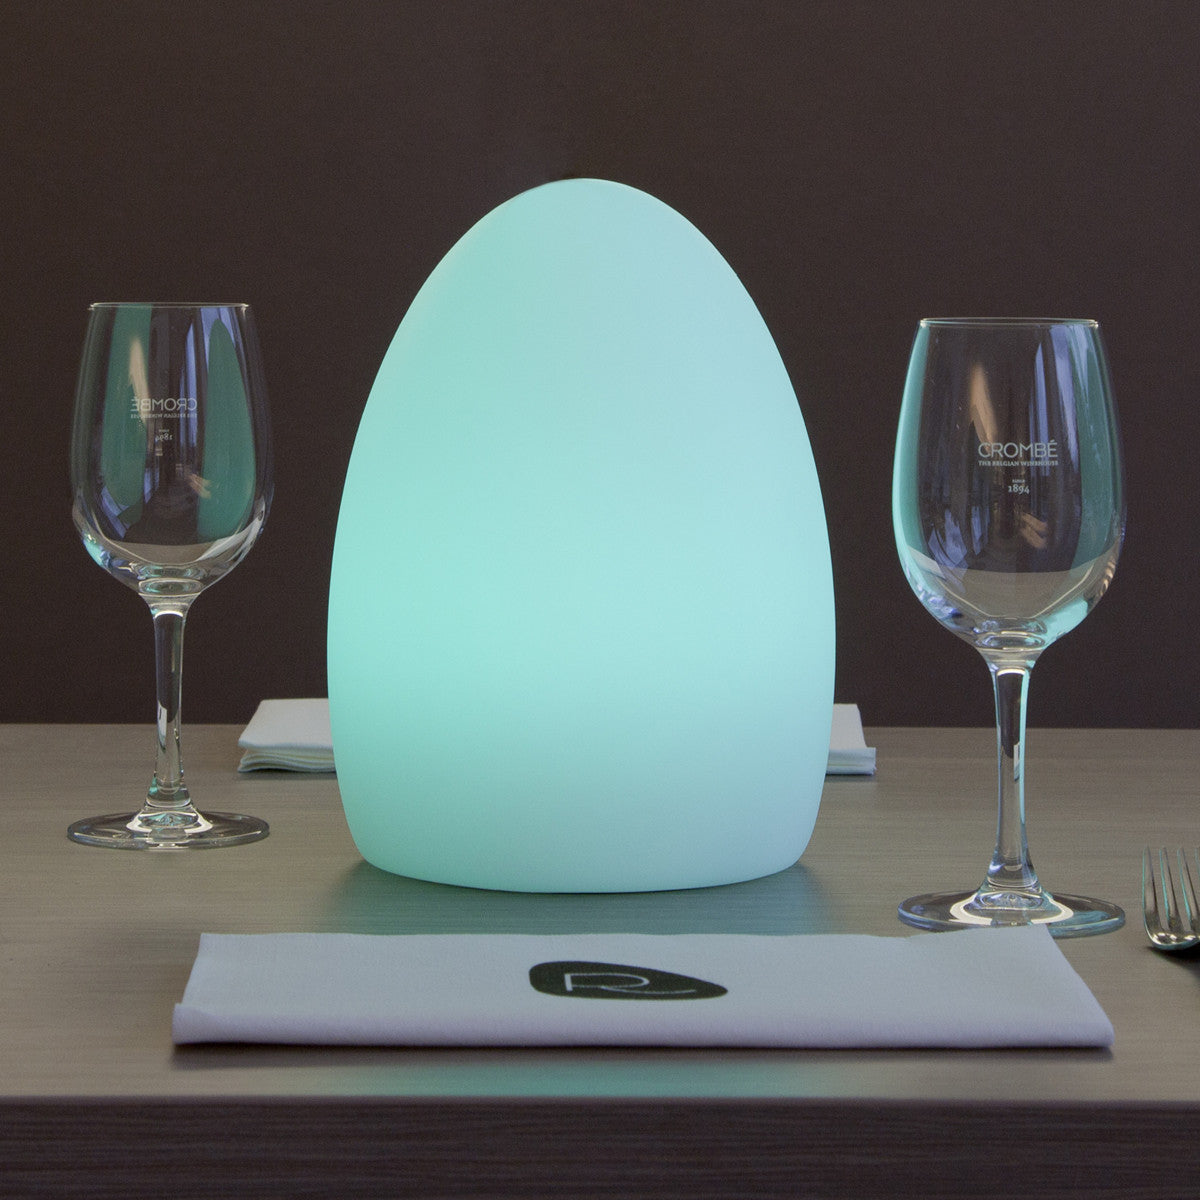 egg LED light - 40cm